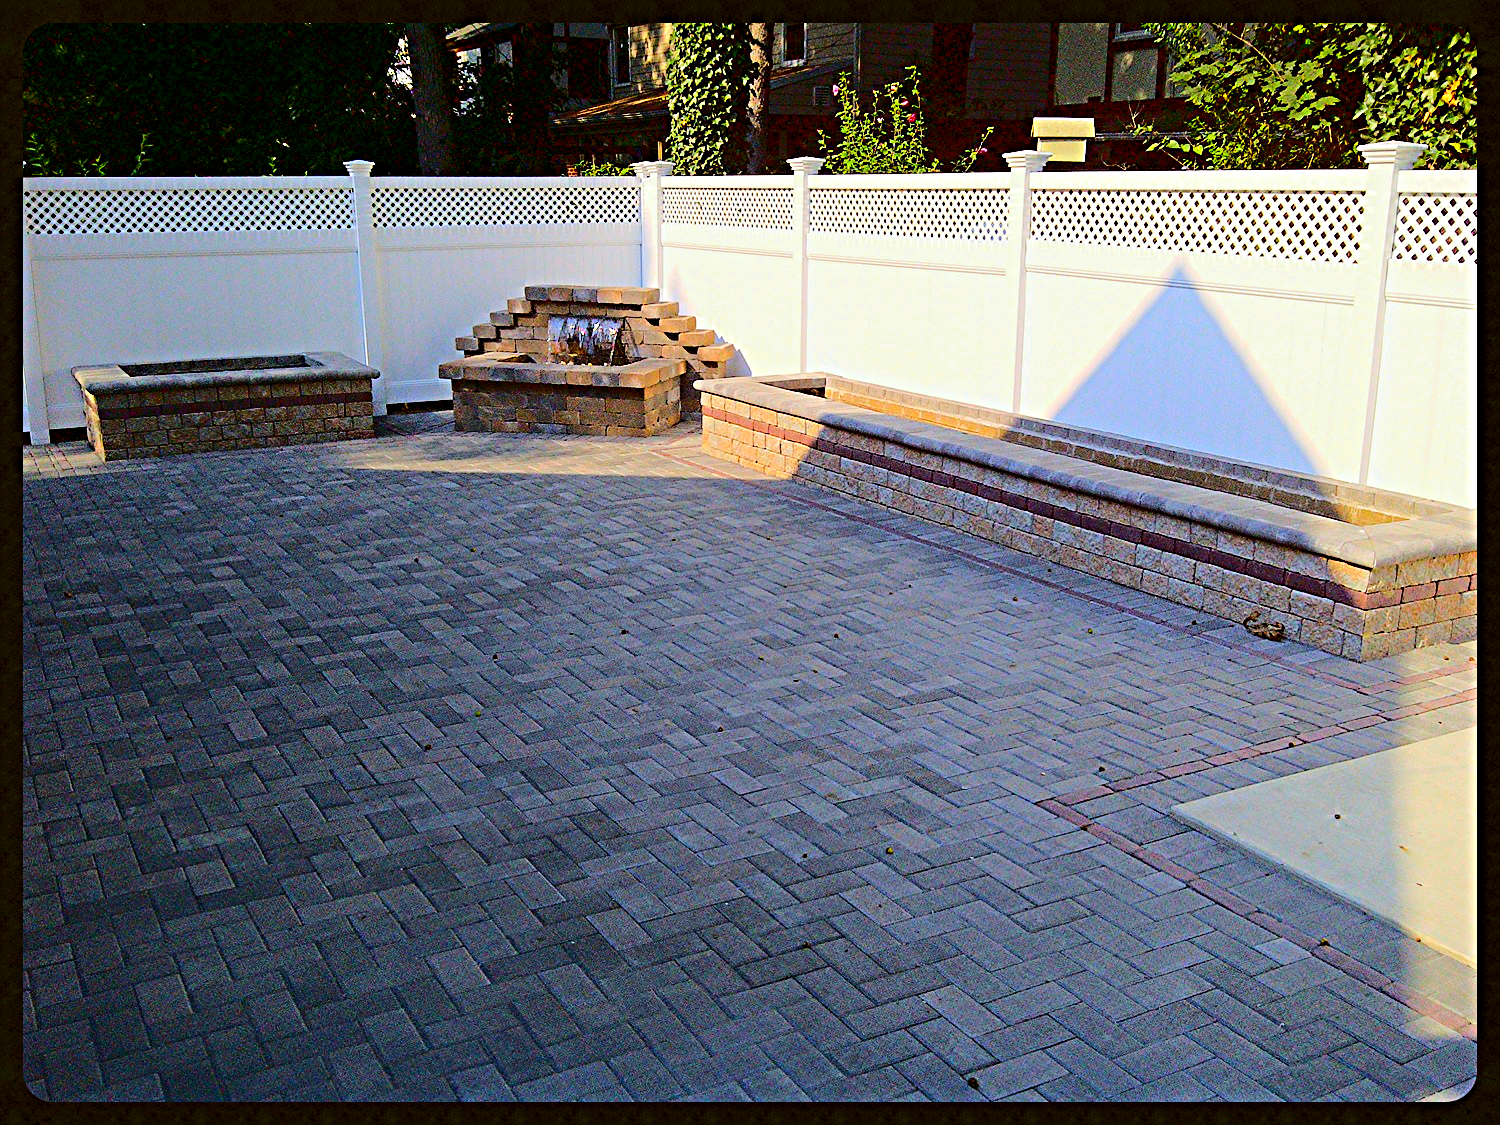 Hollandstone Pavers, Dry Stack walls with detail border for planter boxes, Waterfall with LED colored lights